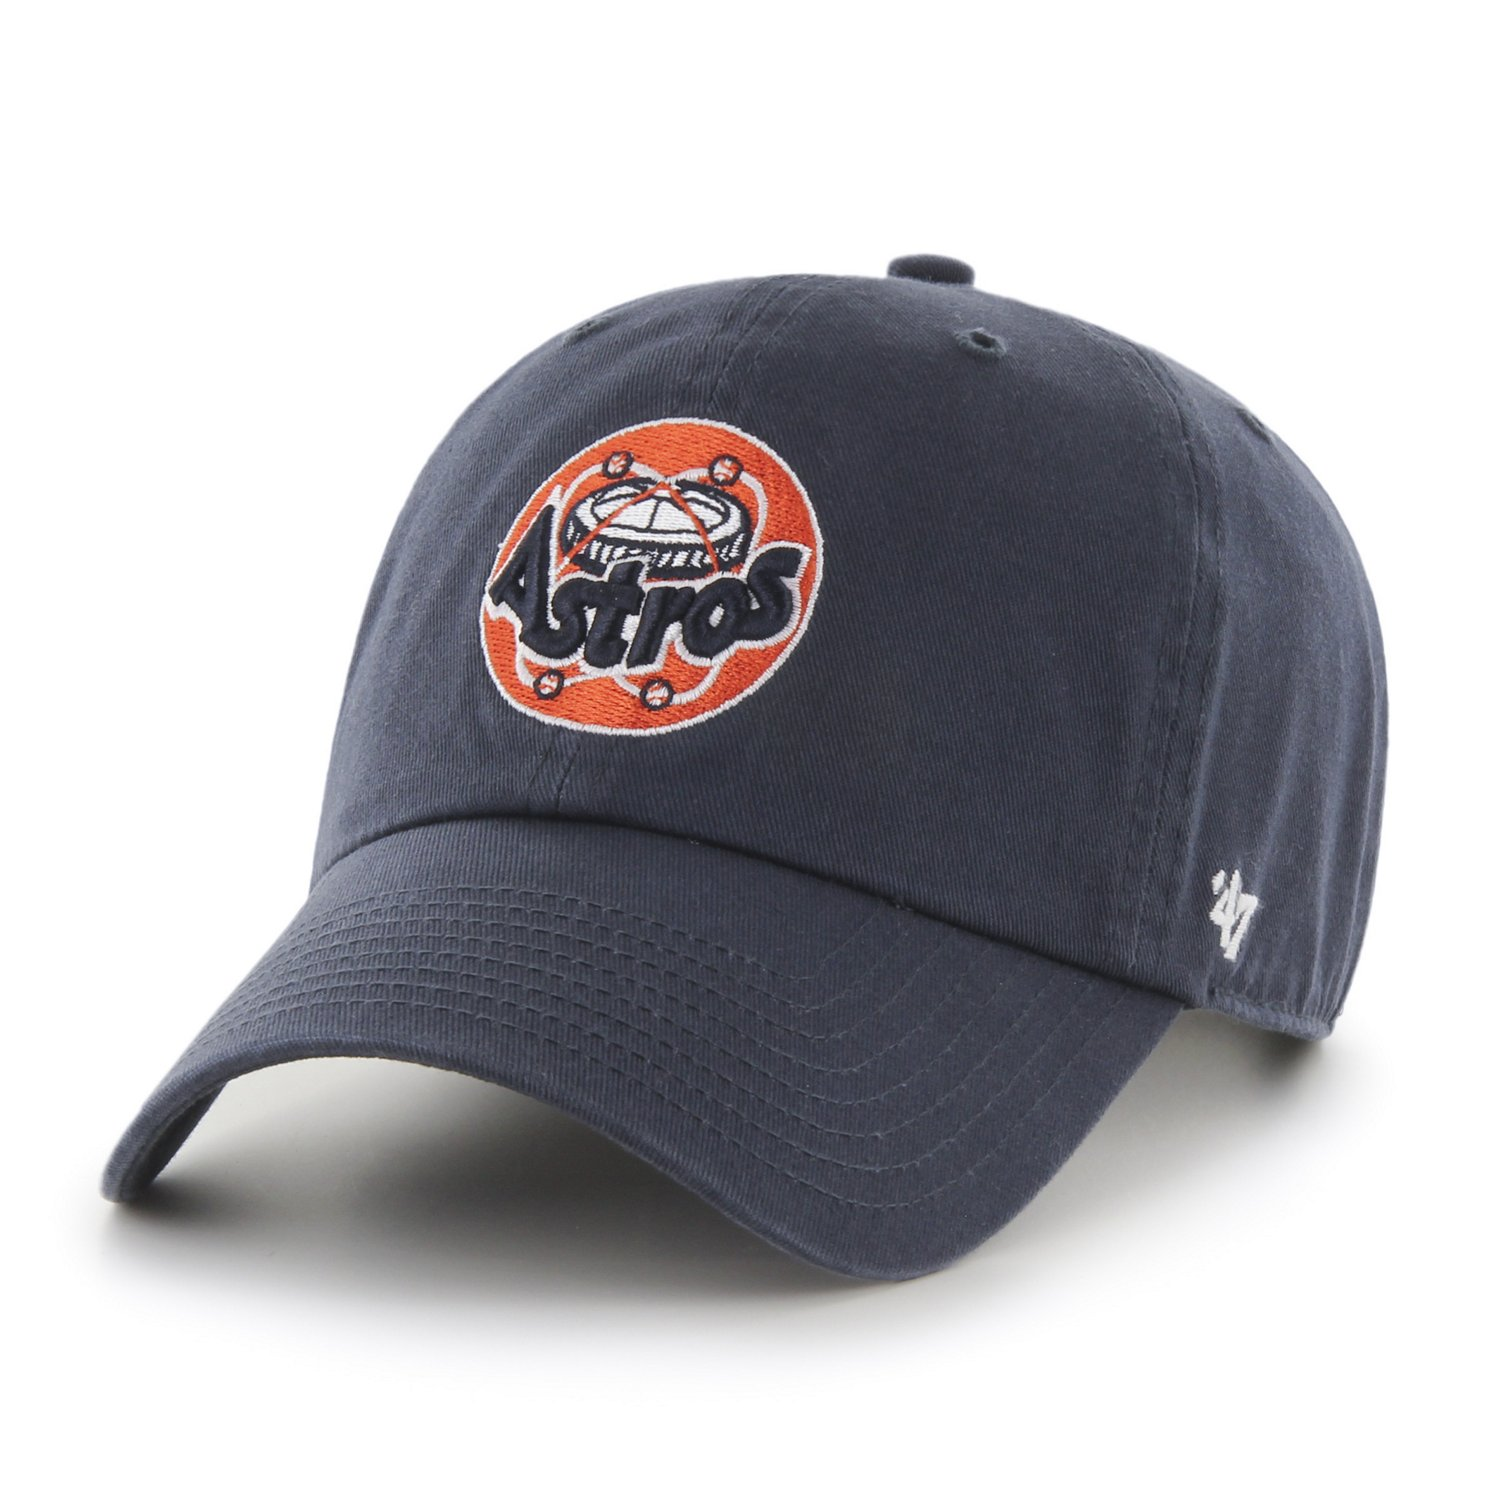 detailed look 41e24 75fe1 Display product reviews for  47 Men s Houston Astros Clean Up Cap